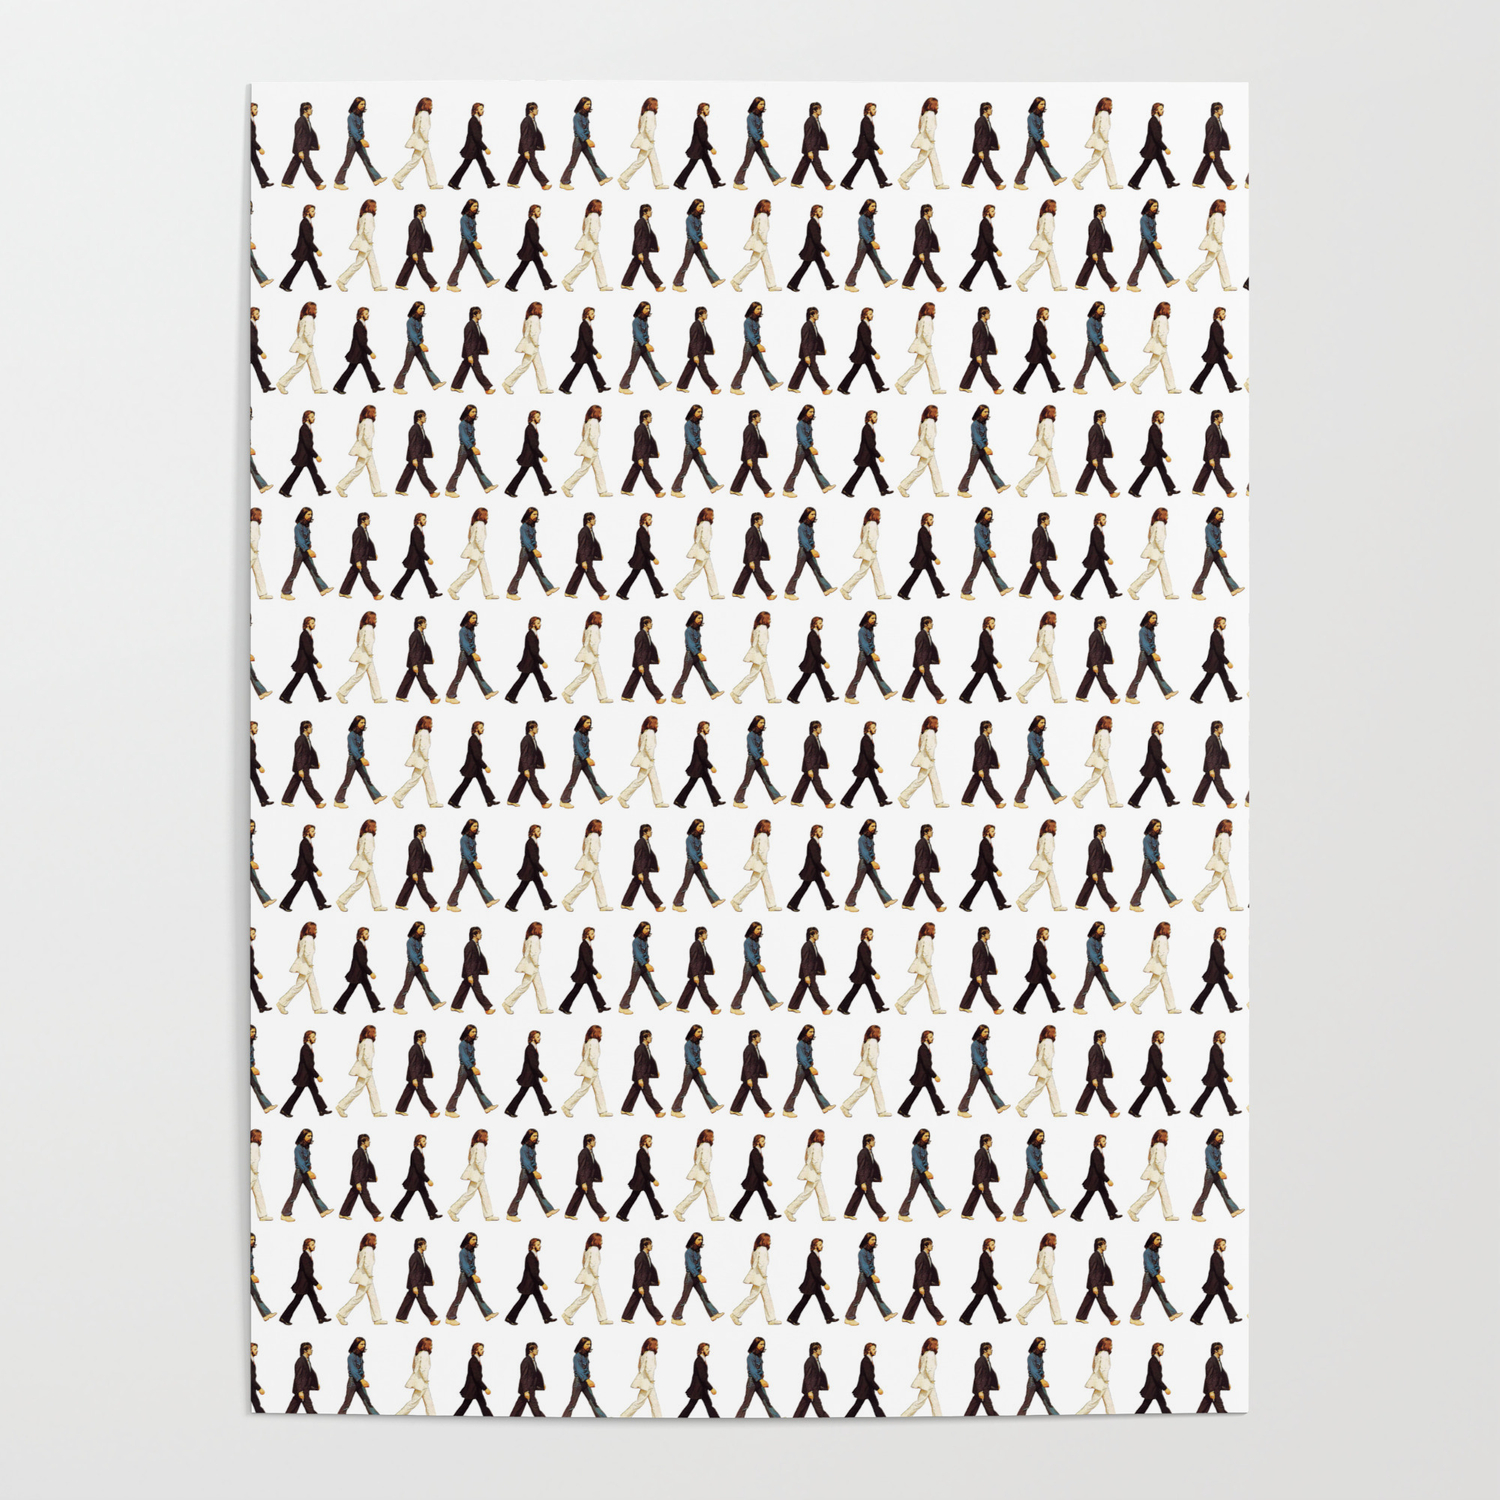 Pattern abbey road poster